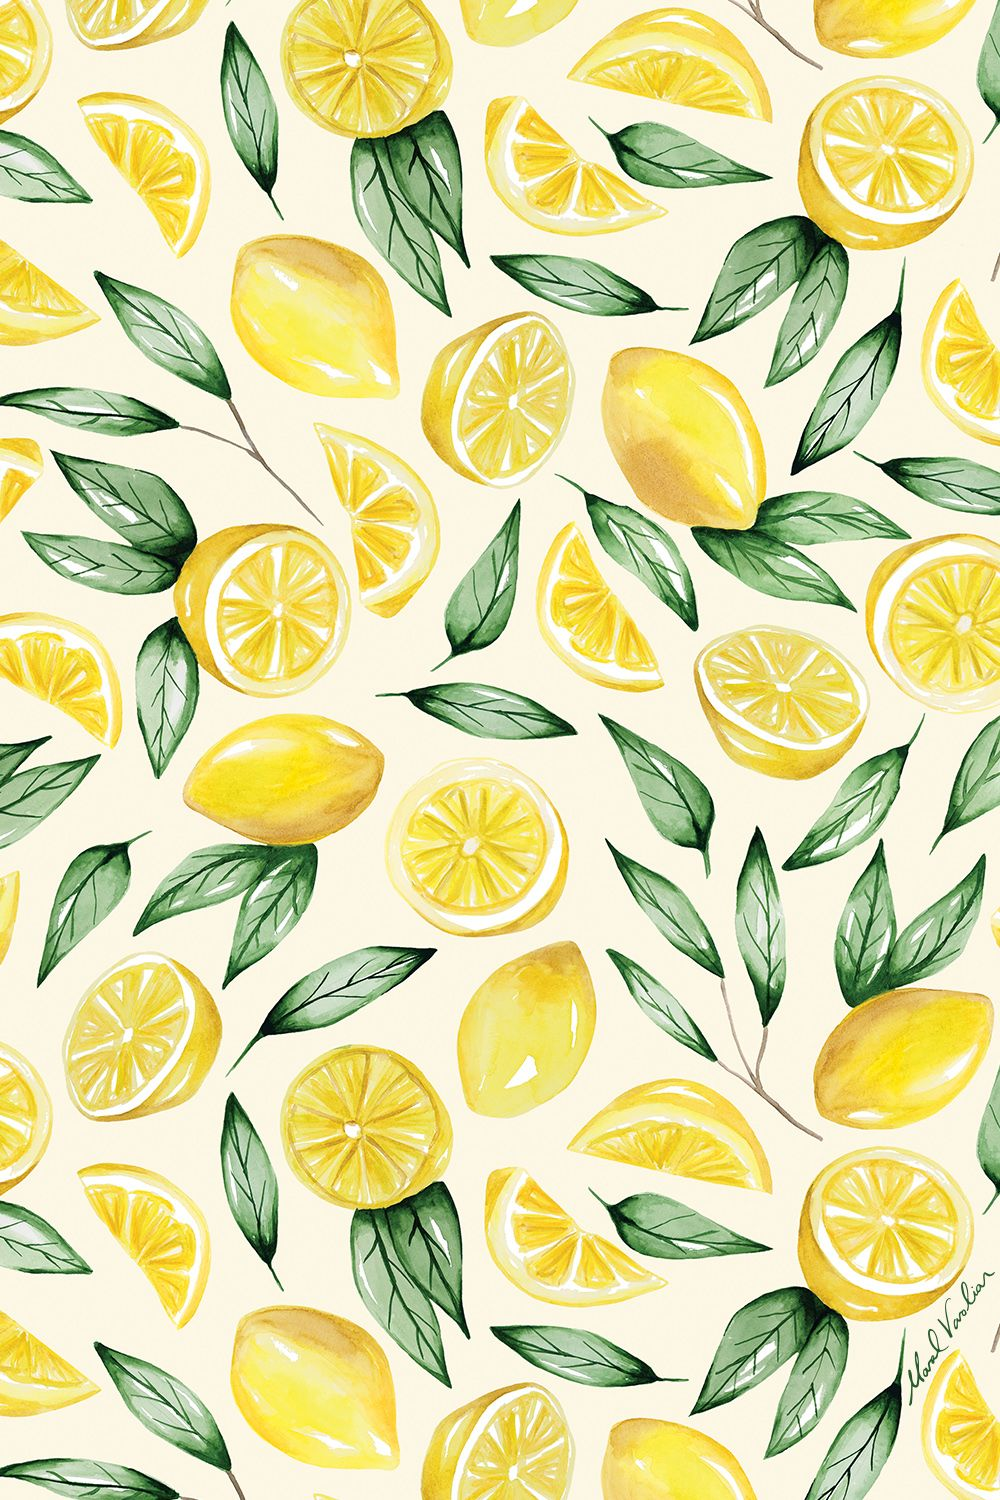 Lemon Pattern Maral Varolian Watercolor Pattern Design Lemon Art Watercolor Pattern